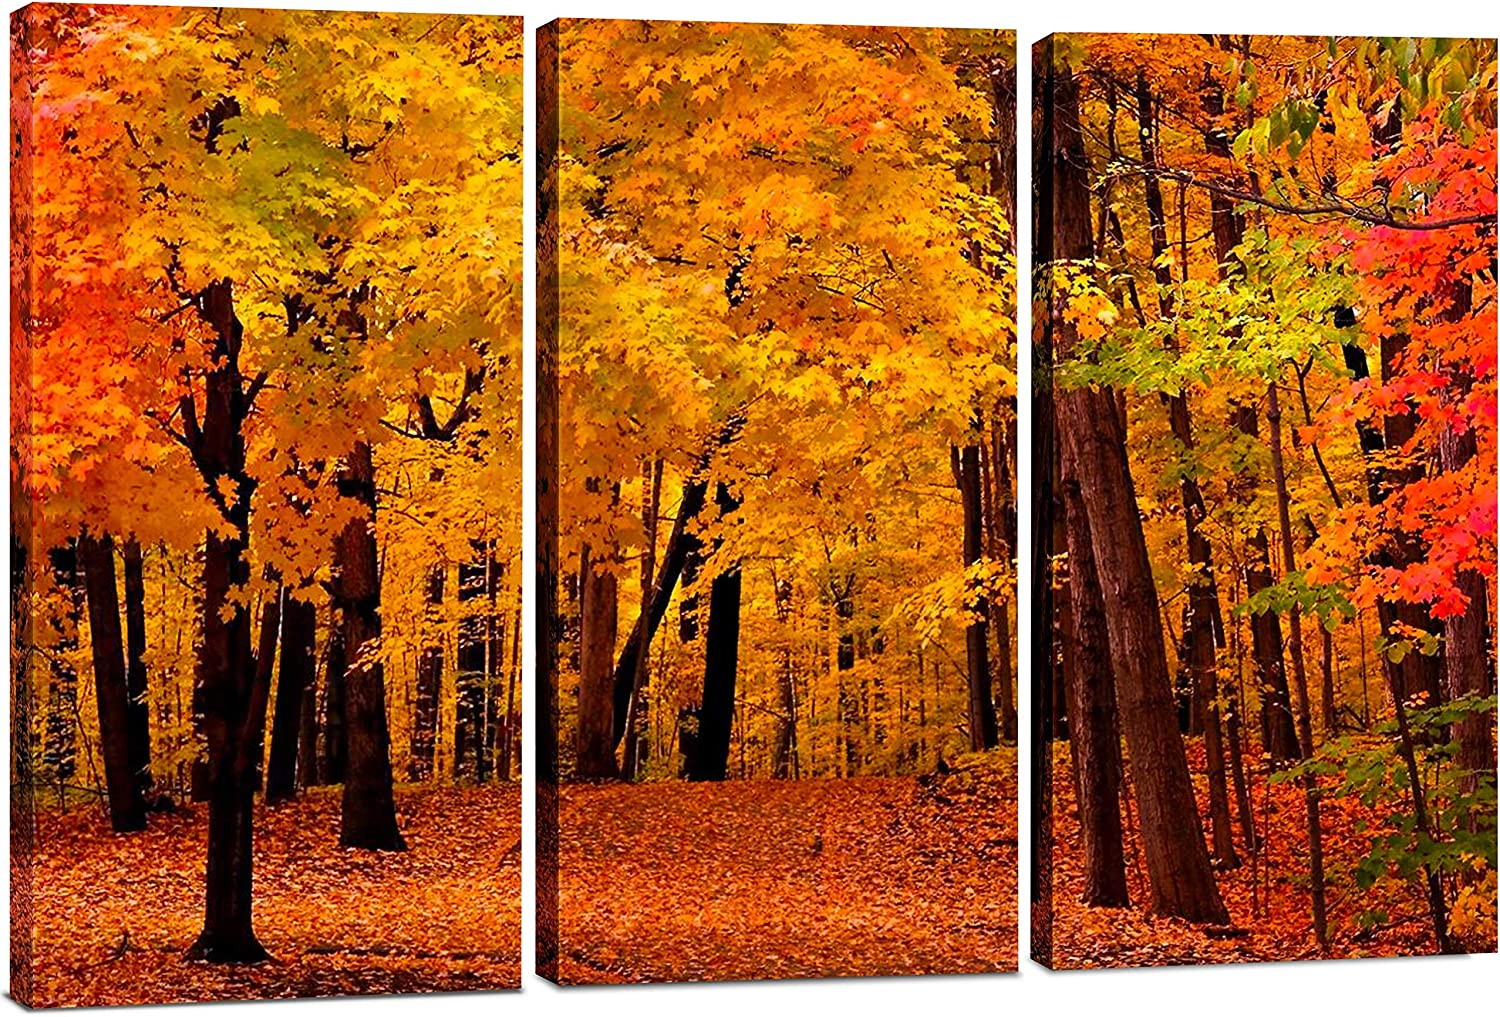 Canvas Wall Art Decor - 12x24 3 Piece Set (Total 24x36 inch) - Autumn Forest Tree - Decorative & Modern Multi Panel Split Canvas Prints for Dining & Living Room, Kitchen, Bedroom, Bathroom & Office